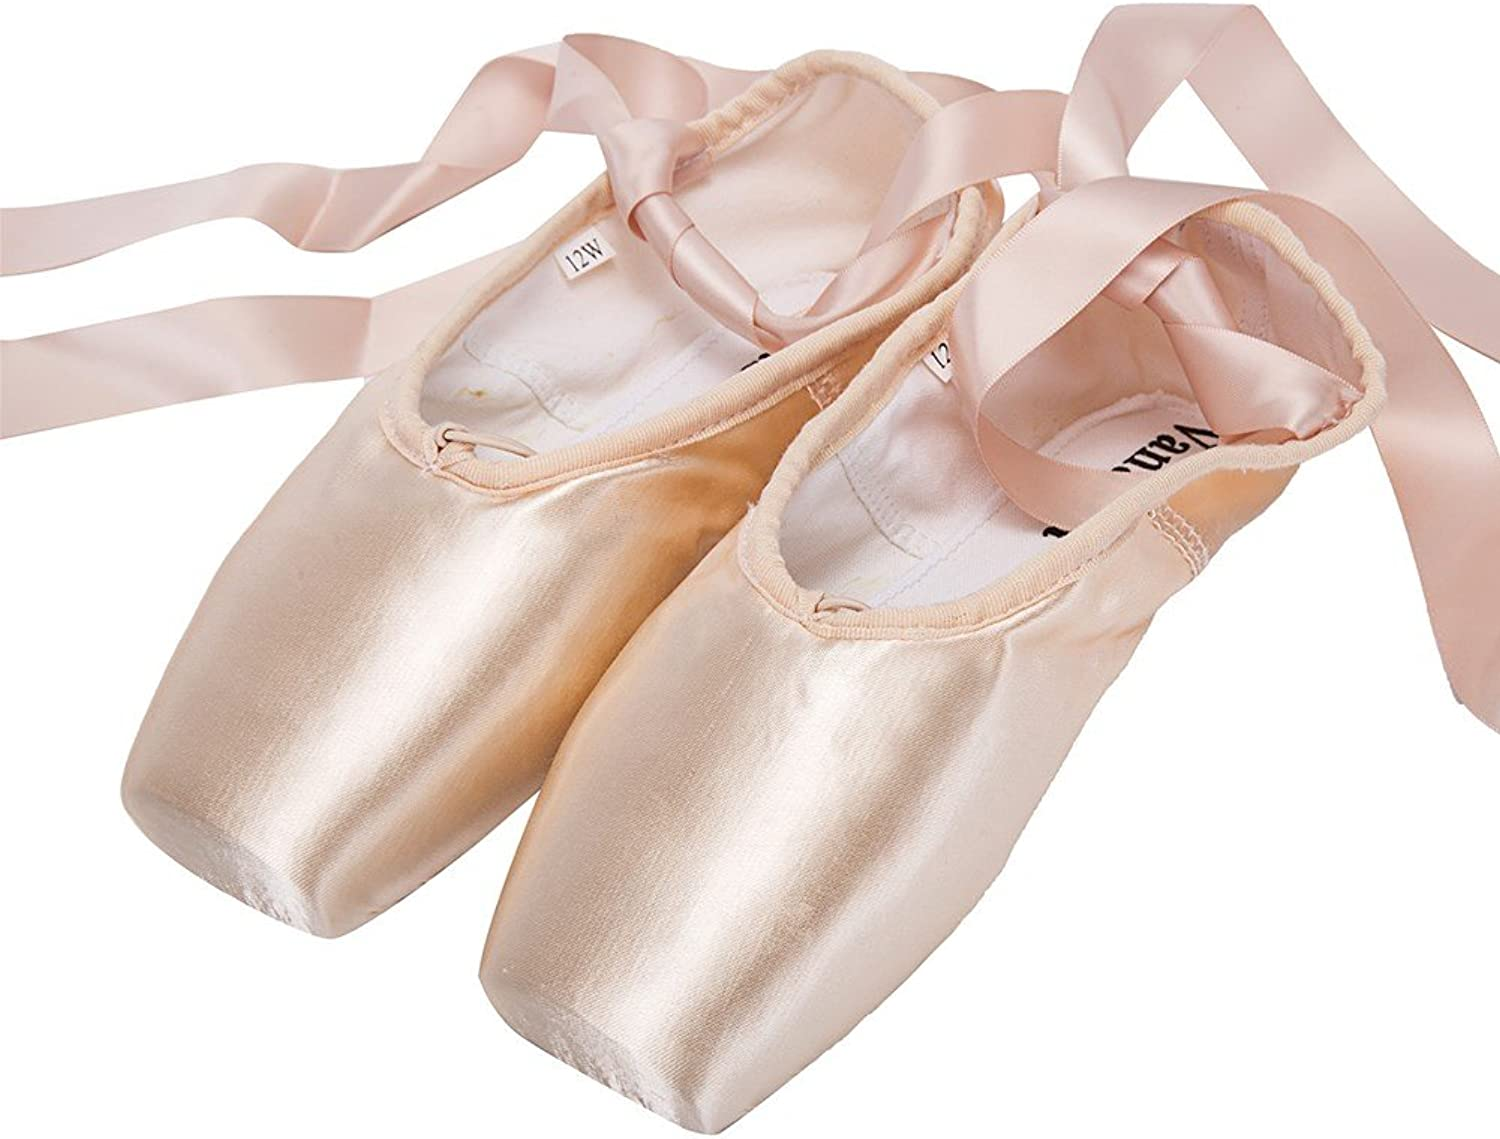 Wendy WENDYWU Womens Dance shoes Pink Satin Ballet Pointe shoes (9)